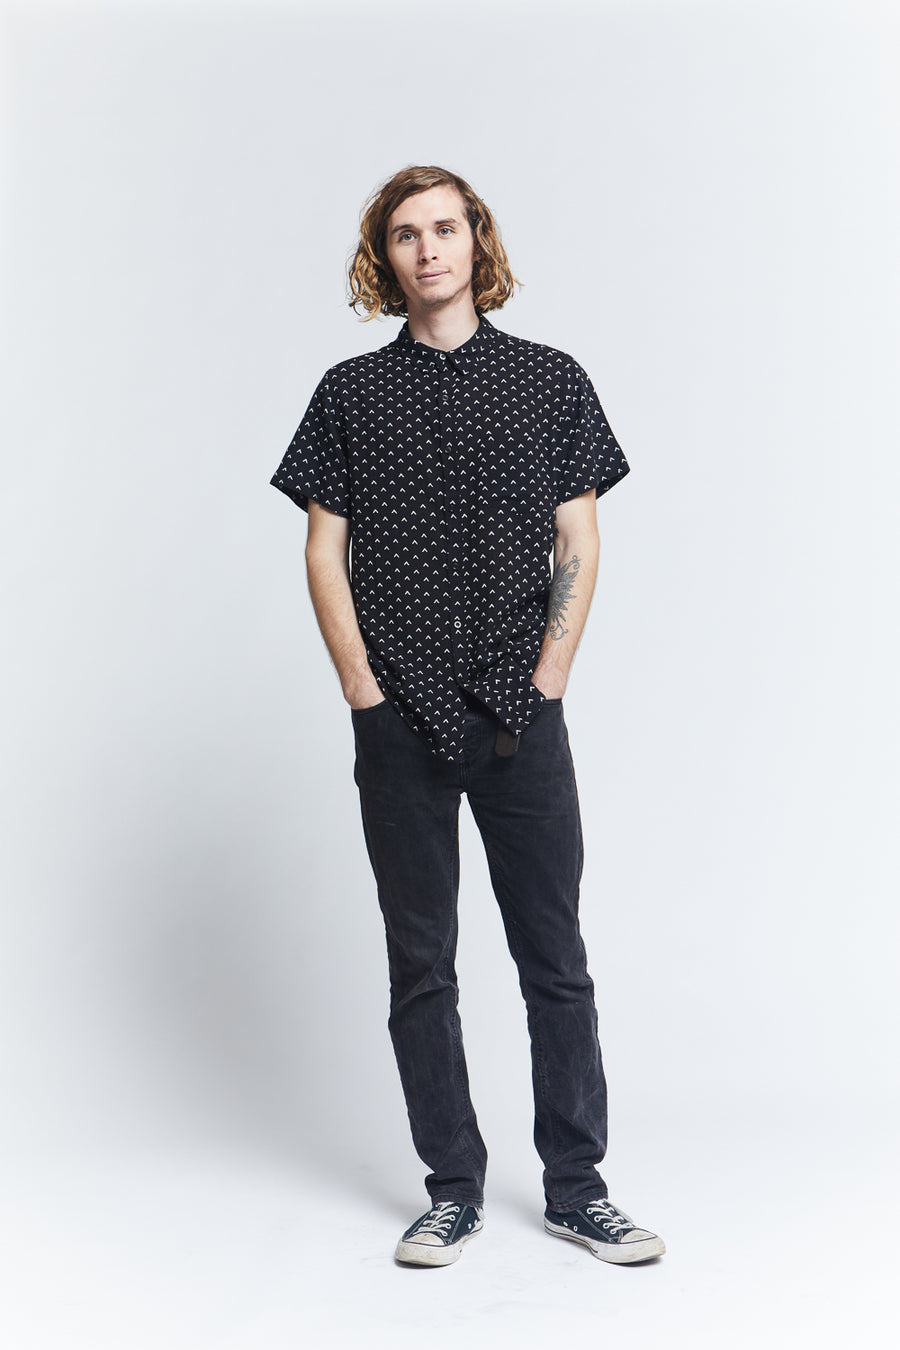 unisex-short-sleeve-button-up-shirt-viscose-regular-fit-black